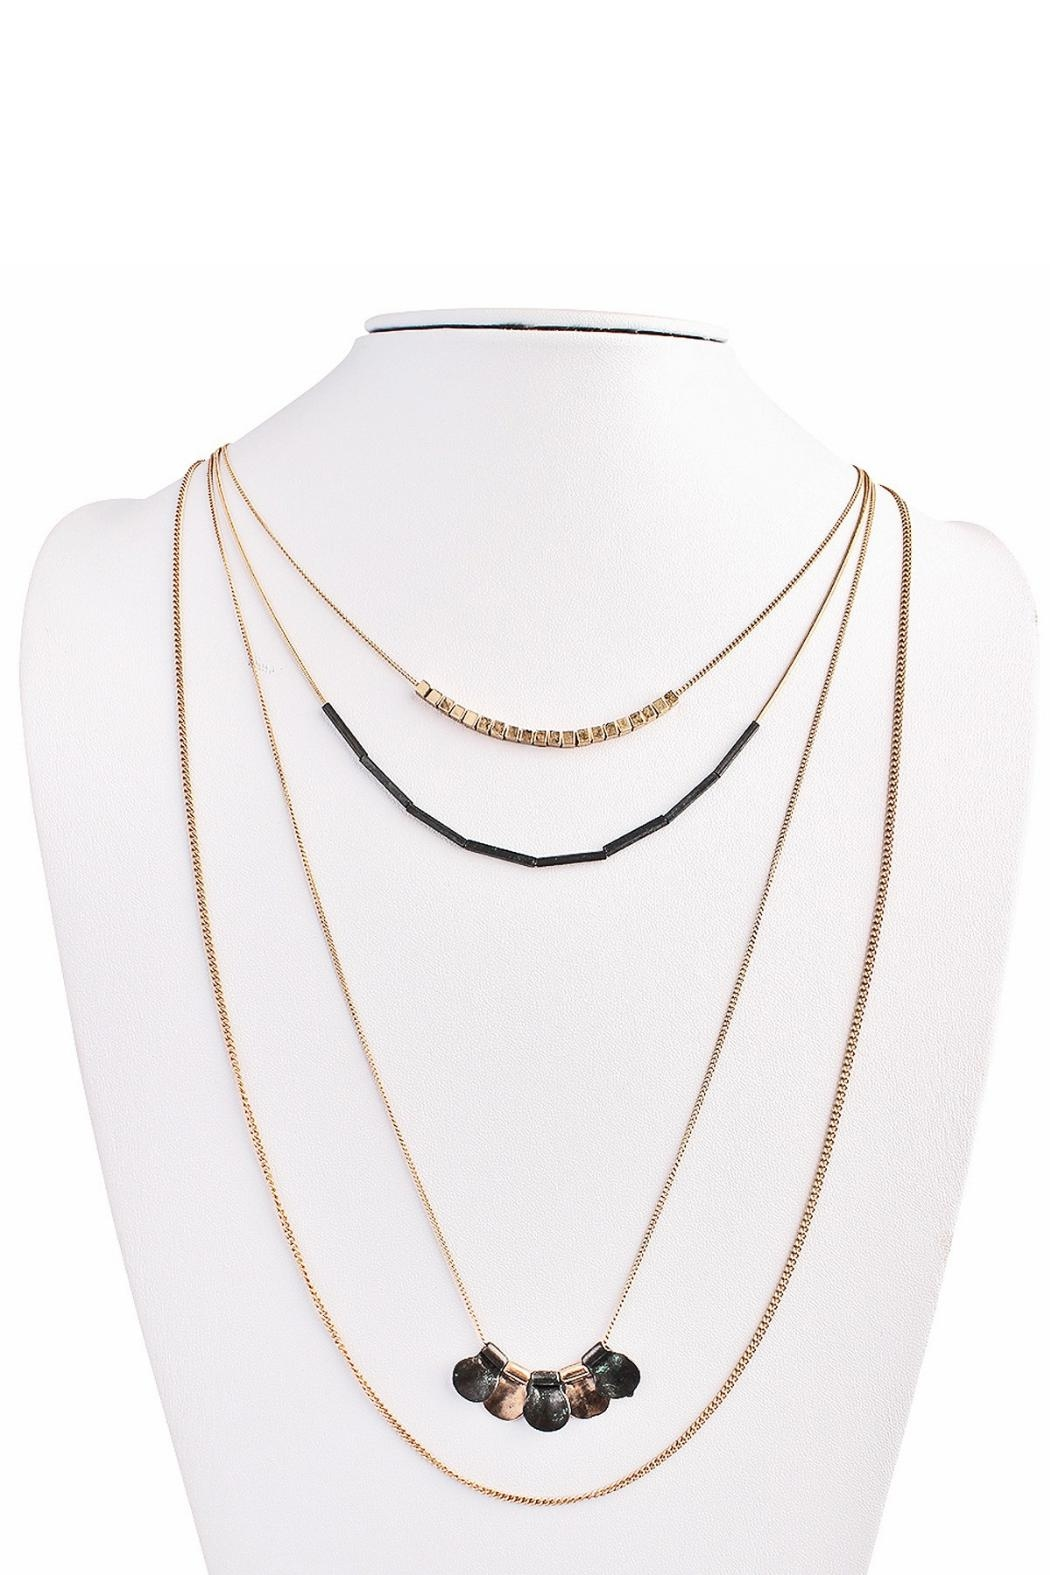 MS Accessories Four Layered Necklace - Main Image